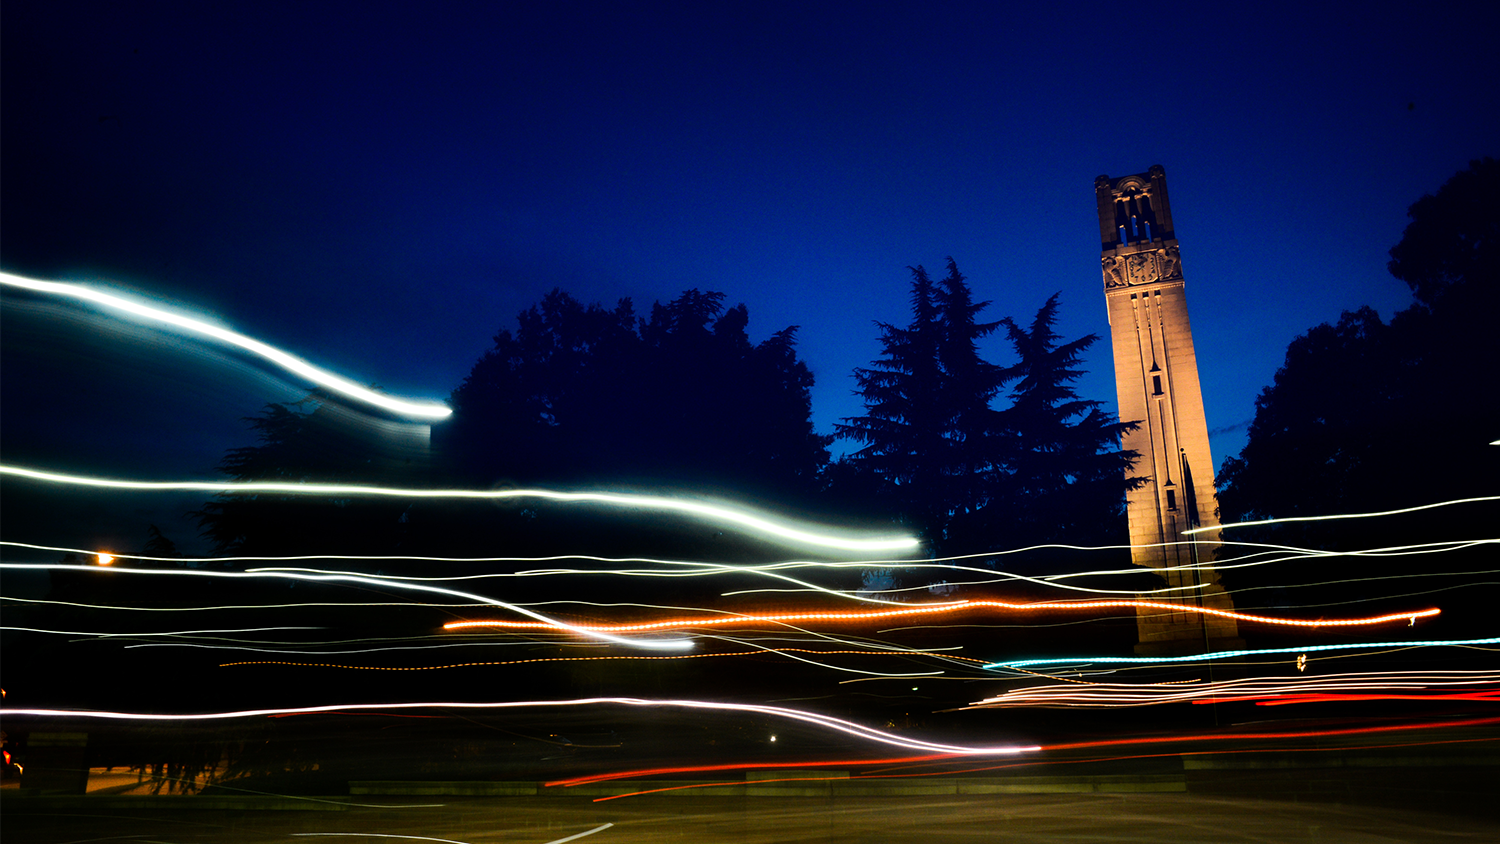 The Belltower at night, with lights from passing cars in the foreground.